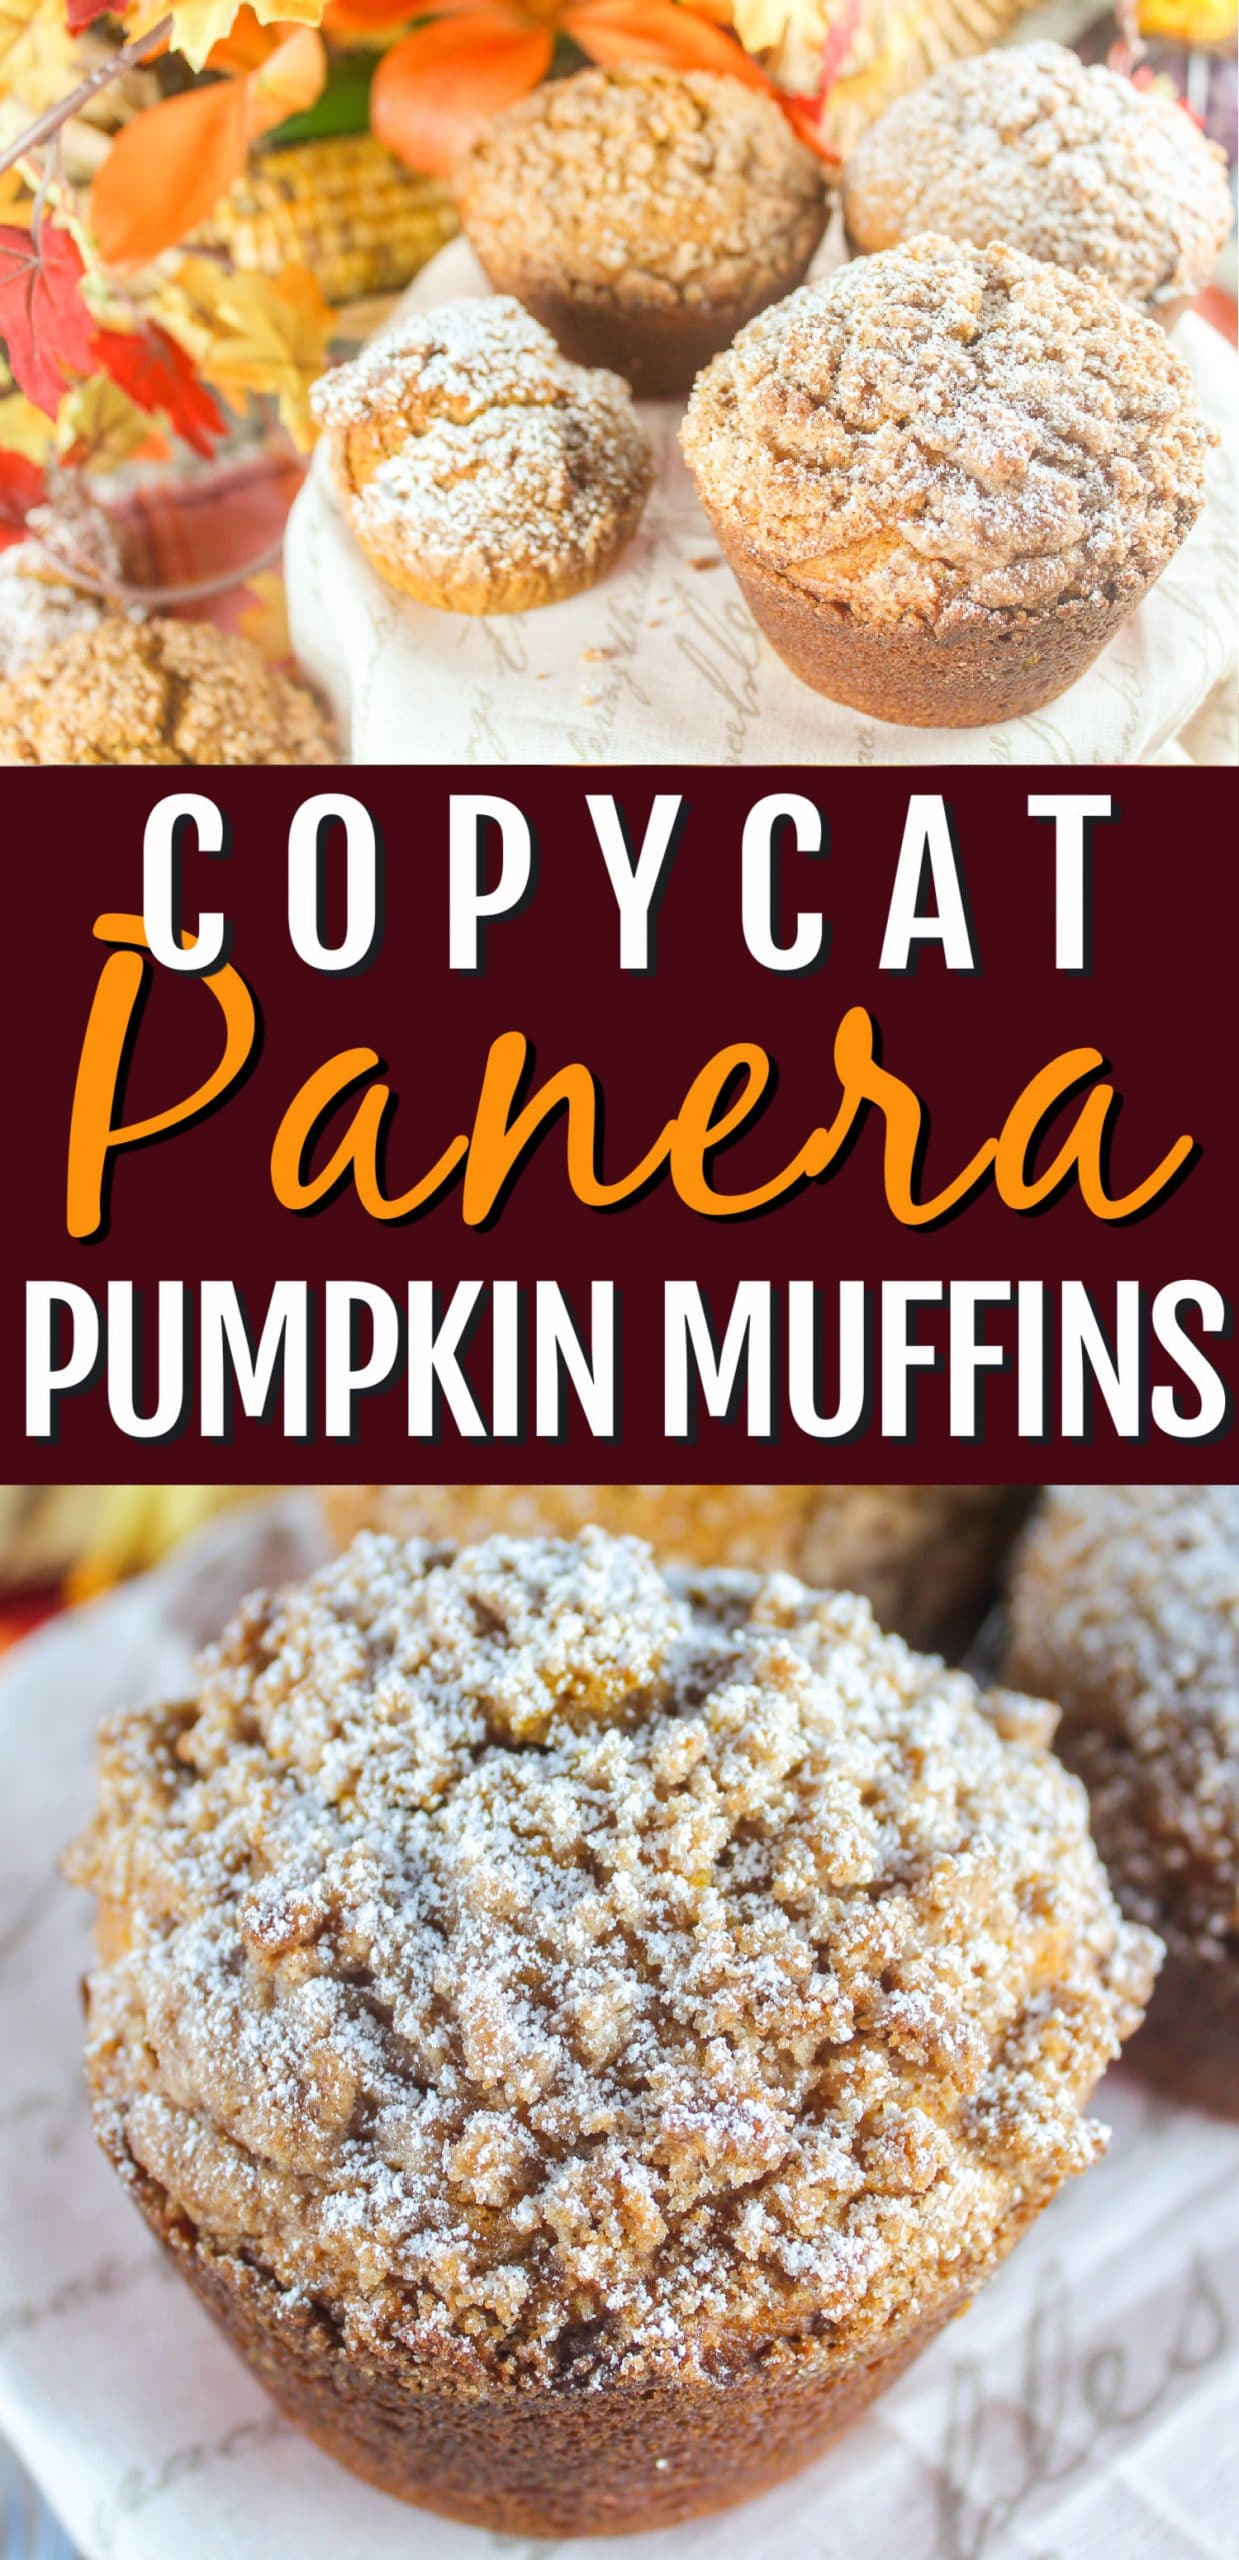 These Copycat Panera Pumpkin Muffins will have you ordering pumpkin spice lattes like a Basic B in 5 seconds flat! They're a delicious balance of pumpkin spice and comforting muffin with an aroma that will fill your home!  via @foodhussy